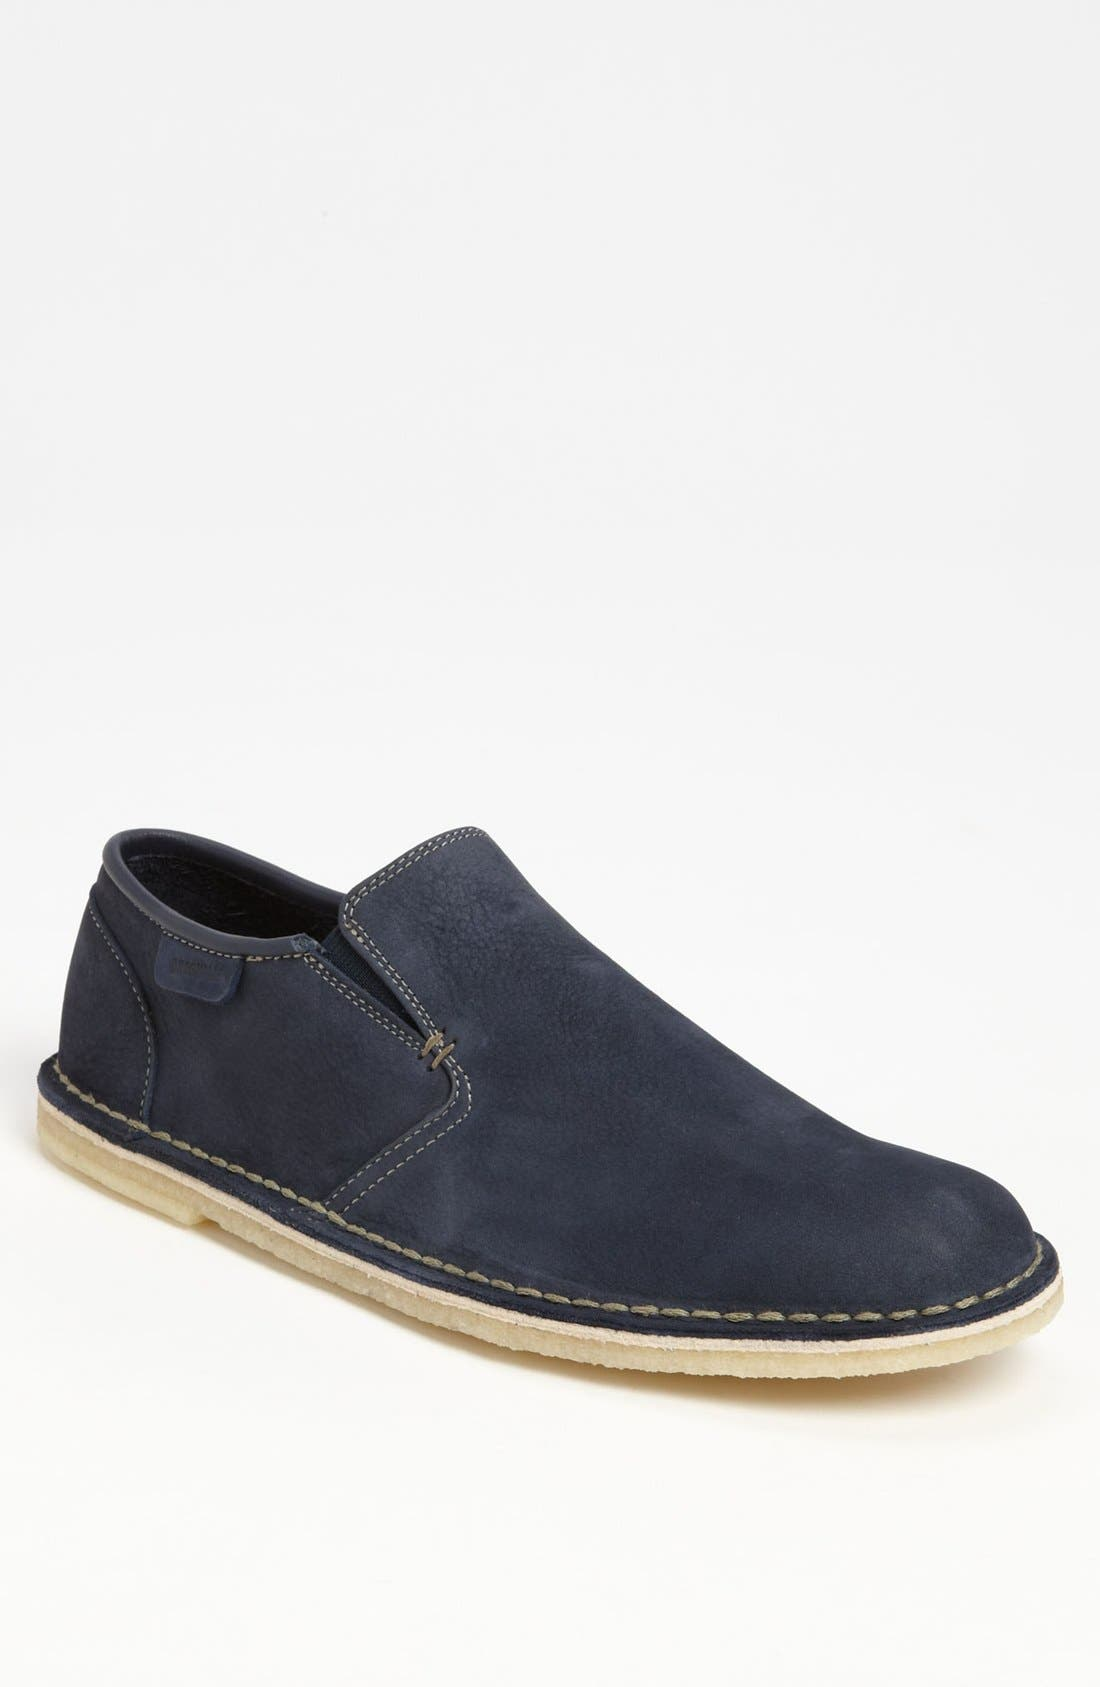 Alternate Image 1 Selected - Clarks® 'Vexation' Slip-On